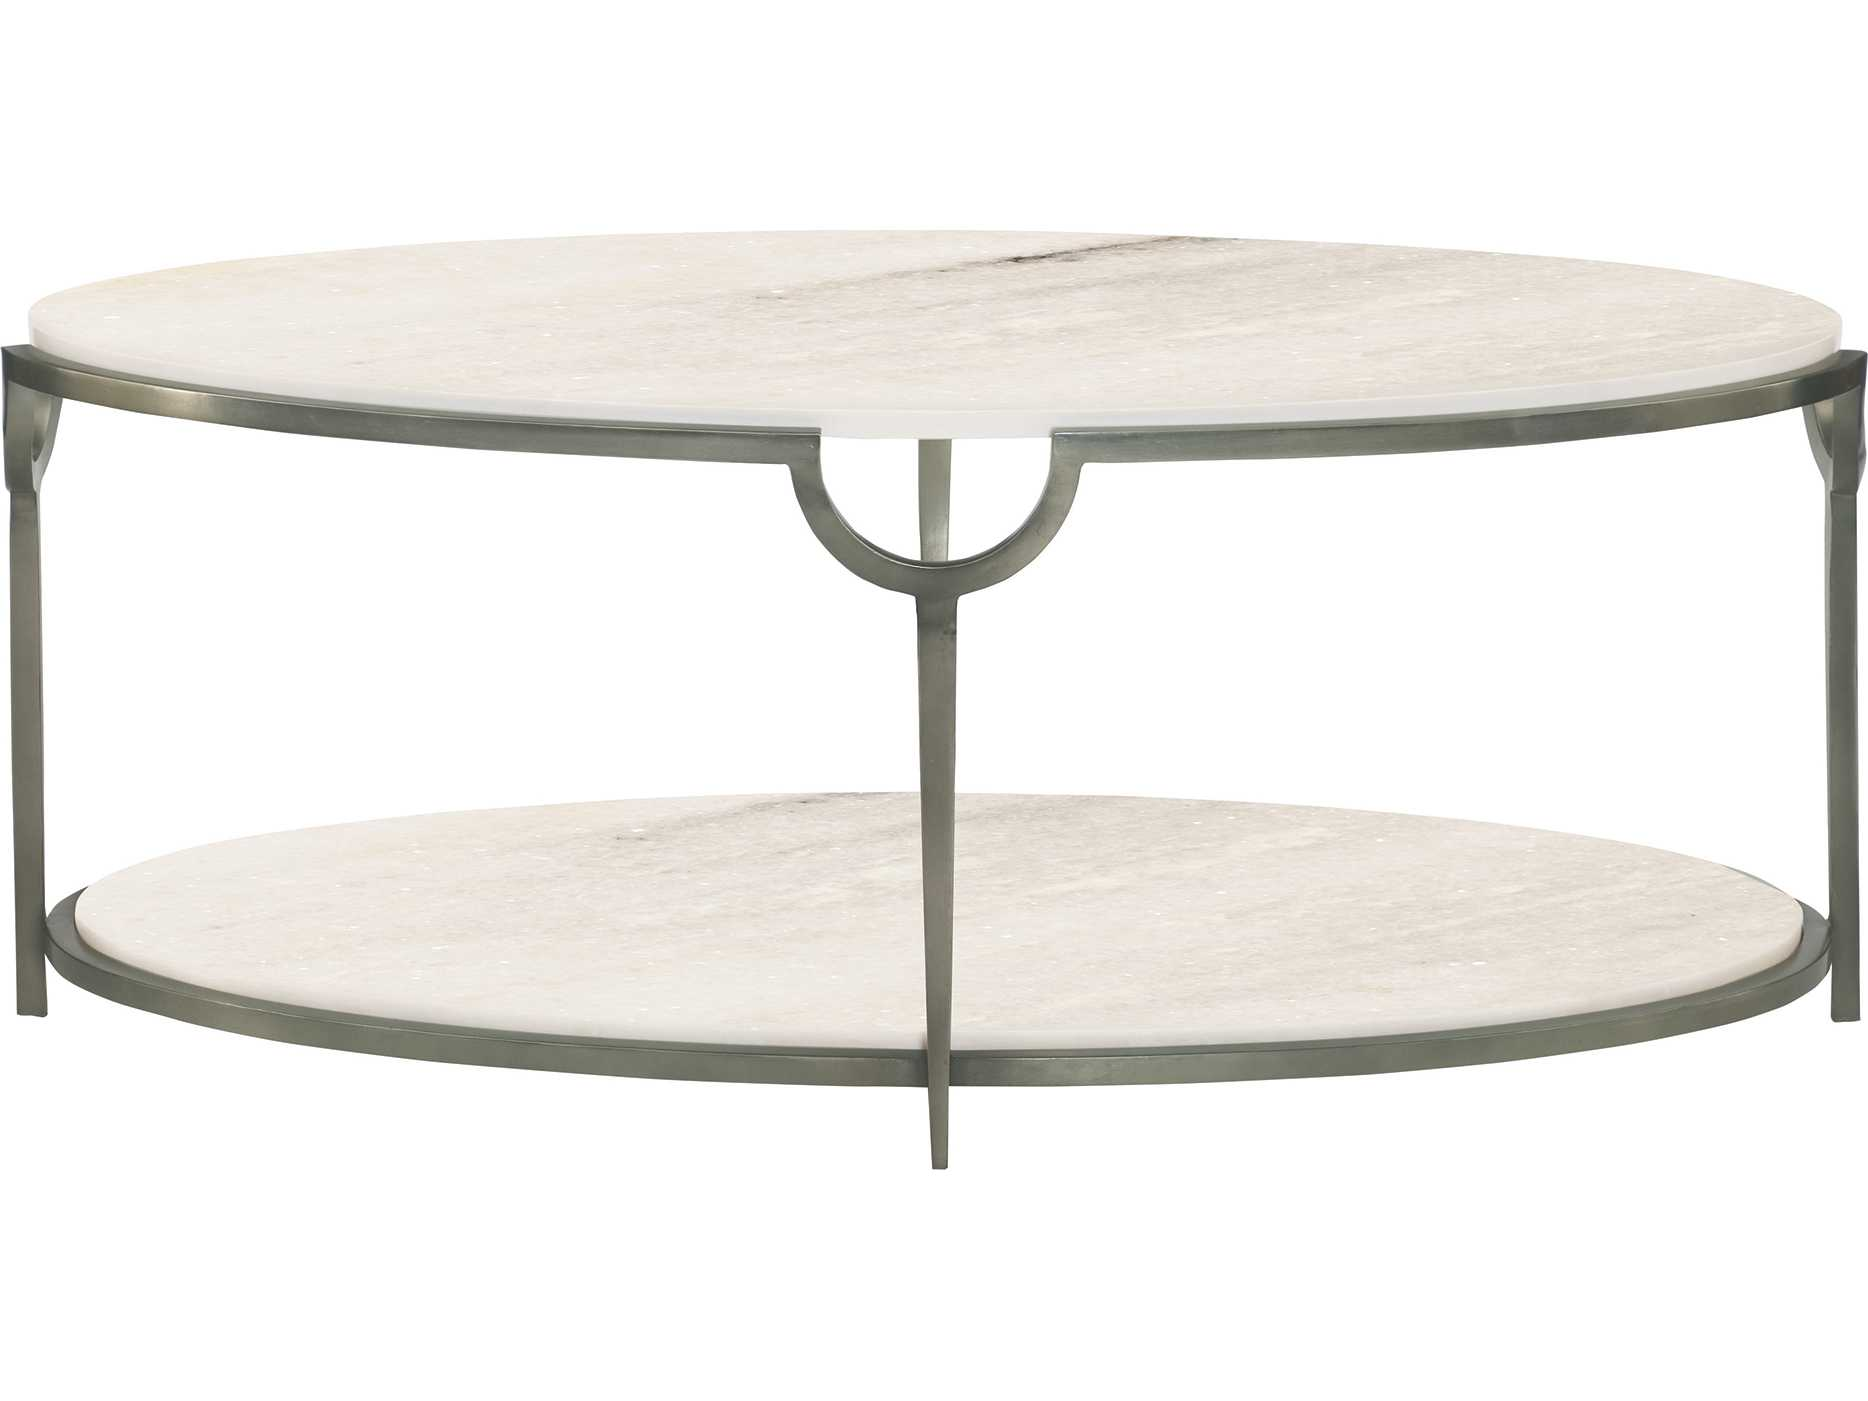 Fine Bernhardt Morello Faux Carrar Marble With Oxidized Nickel Oval Coffee Table Theyellowbook Wood Chair Design Ideas Theyellowbookinfo